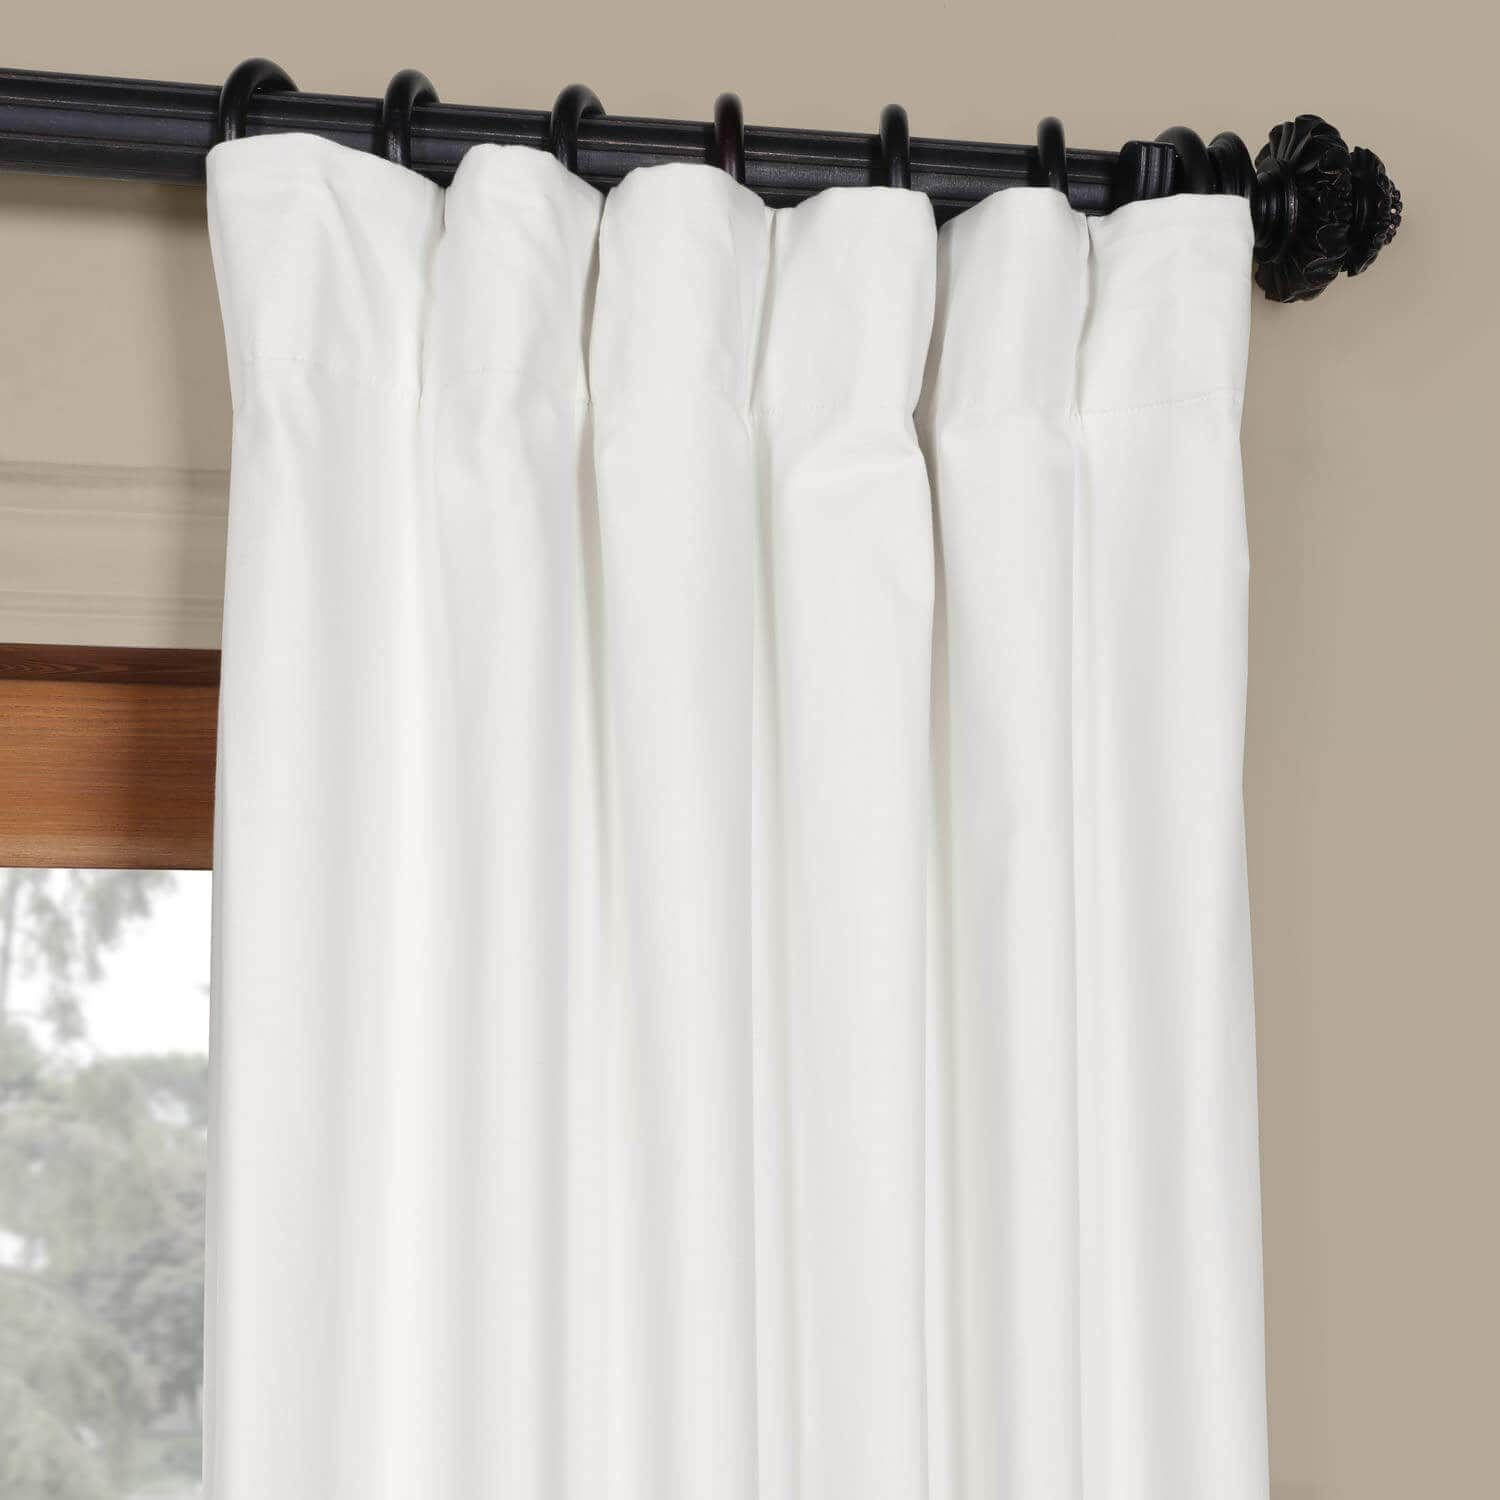 Fresh Popcorn Solid Cotton Curtain | Curtains | Curtains Pertaining To Solid Cotton Curtain Panels (View 23 of 30)